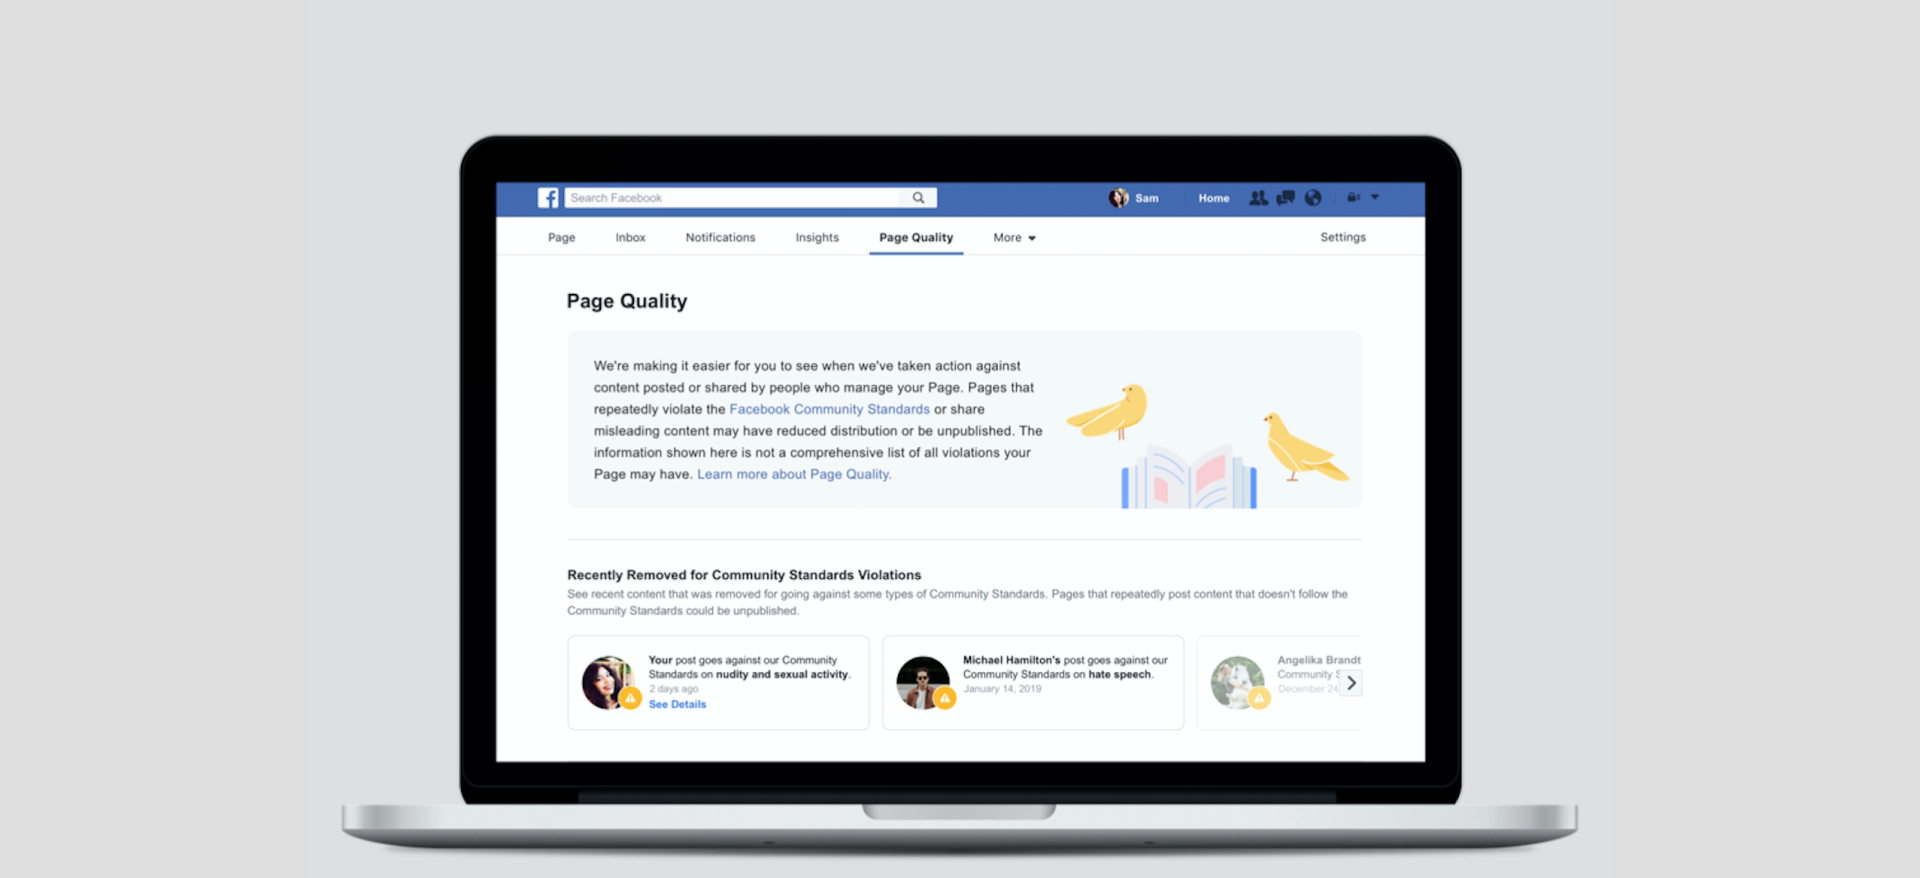 Facebook may proactively close Pages and Groups before they